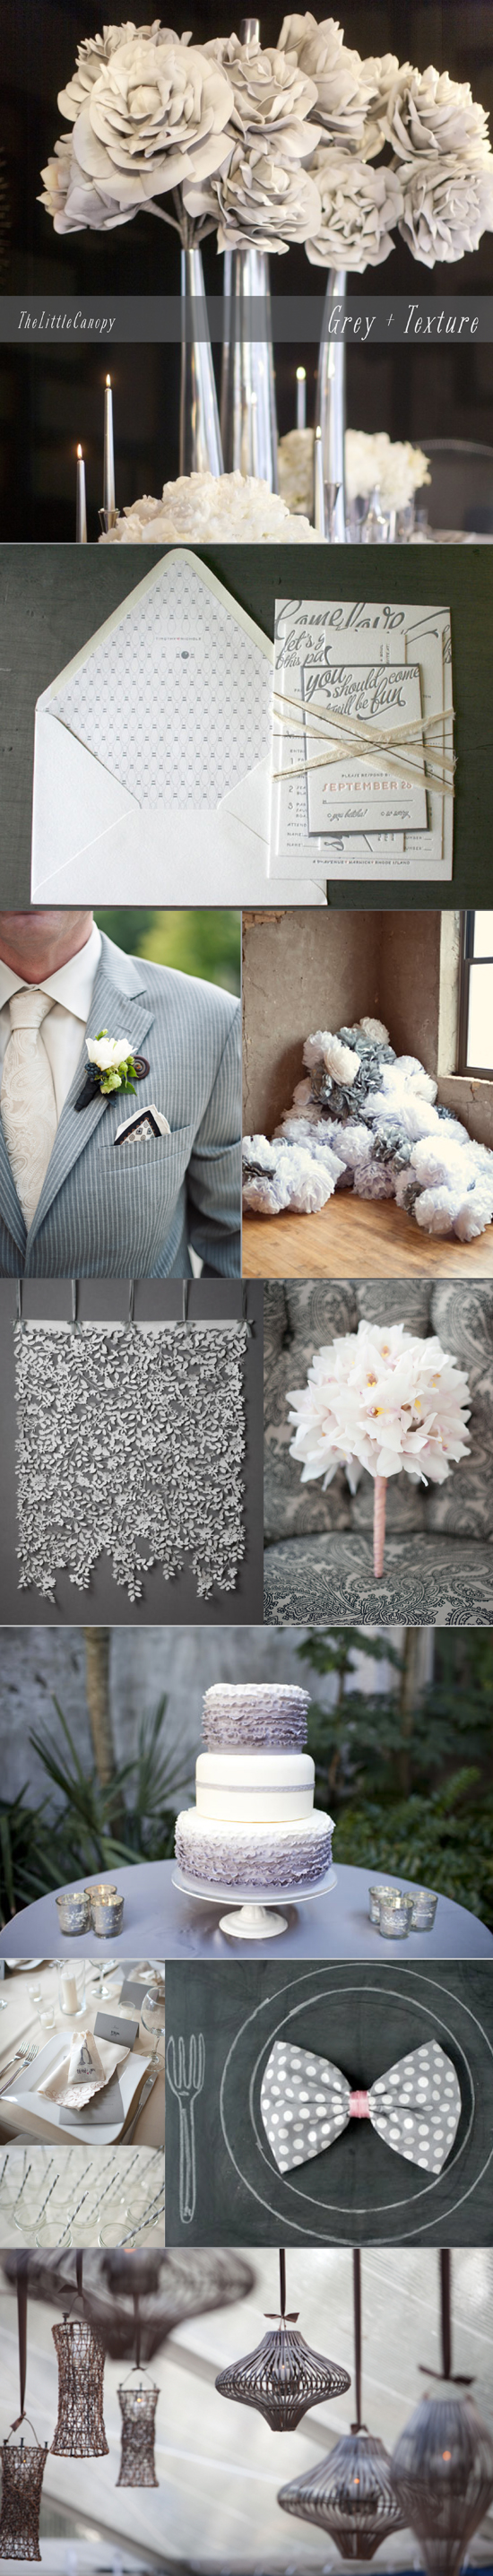 Inspiration Board for weddings in grey color and textures and patterns